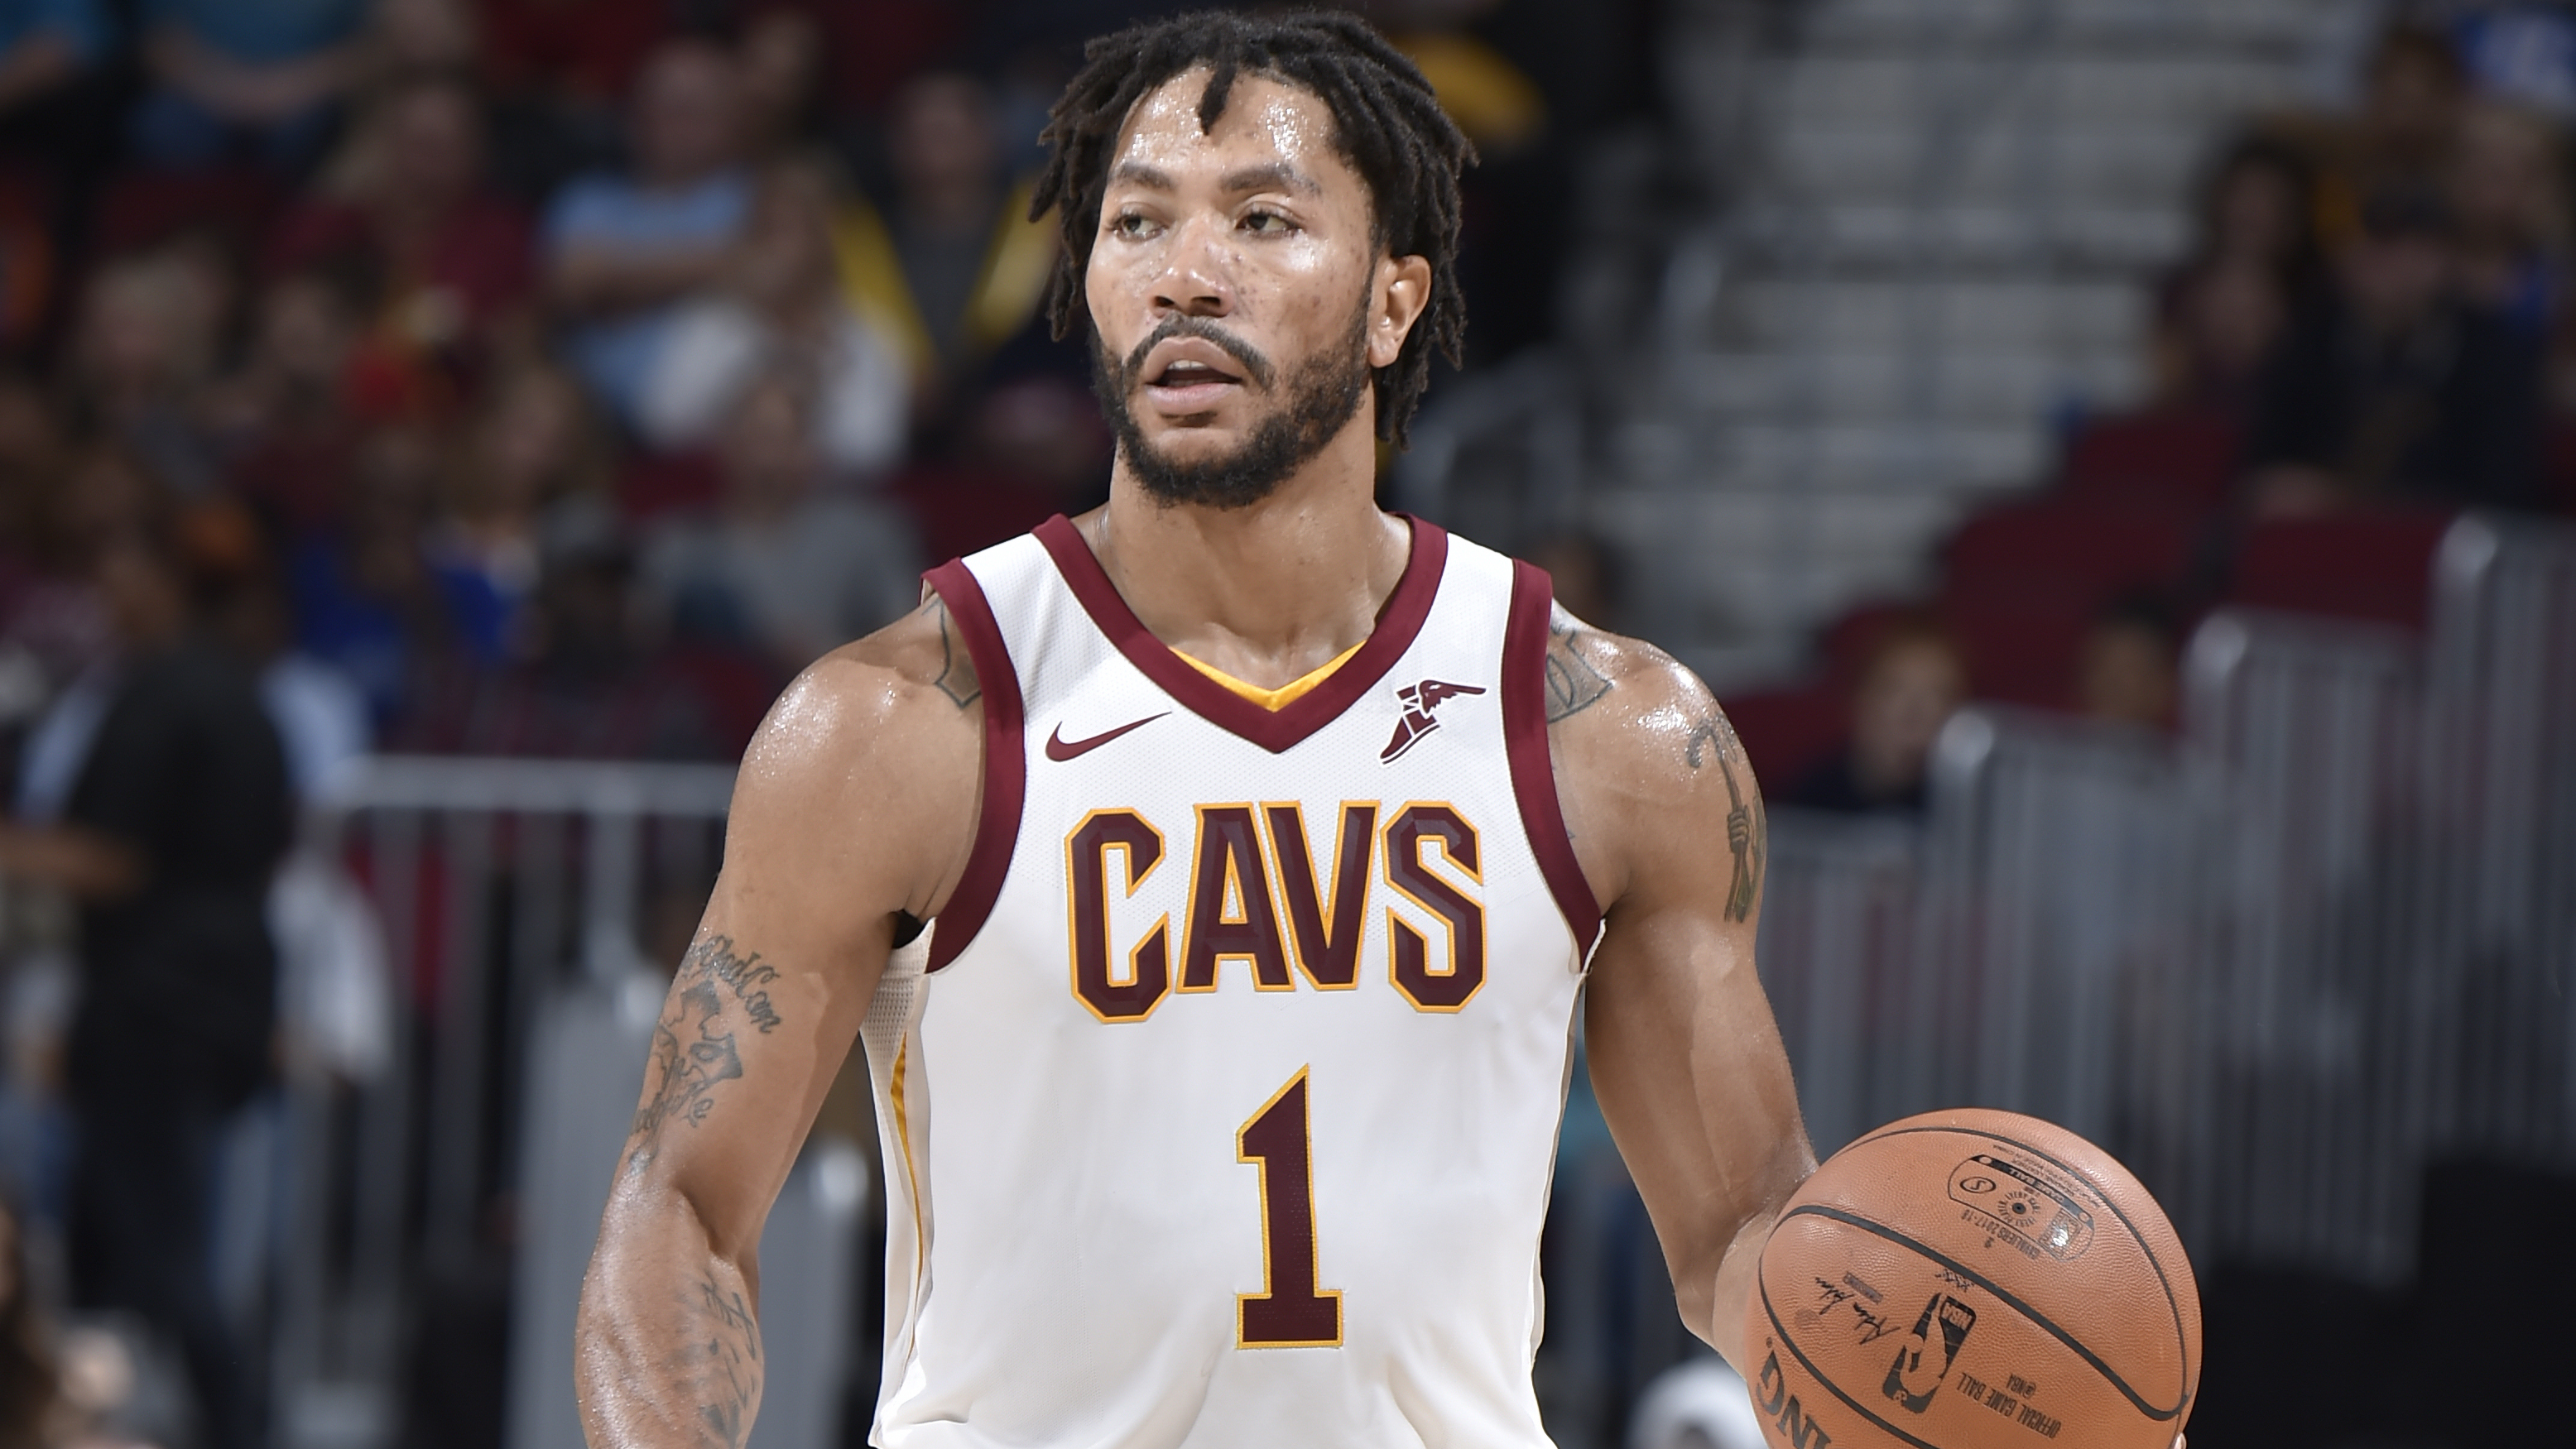 American basketball player derrick rose salary net worth - Derrick rose cavs wallpaper ...